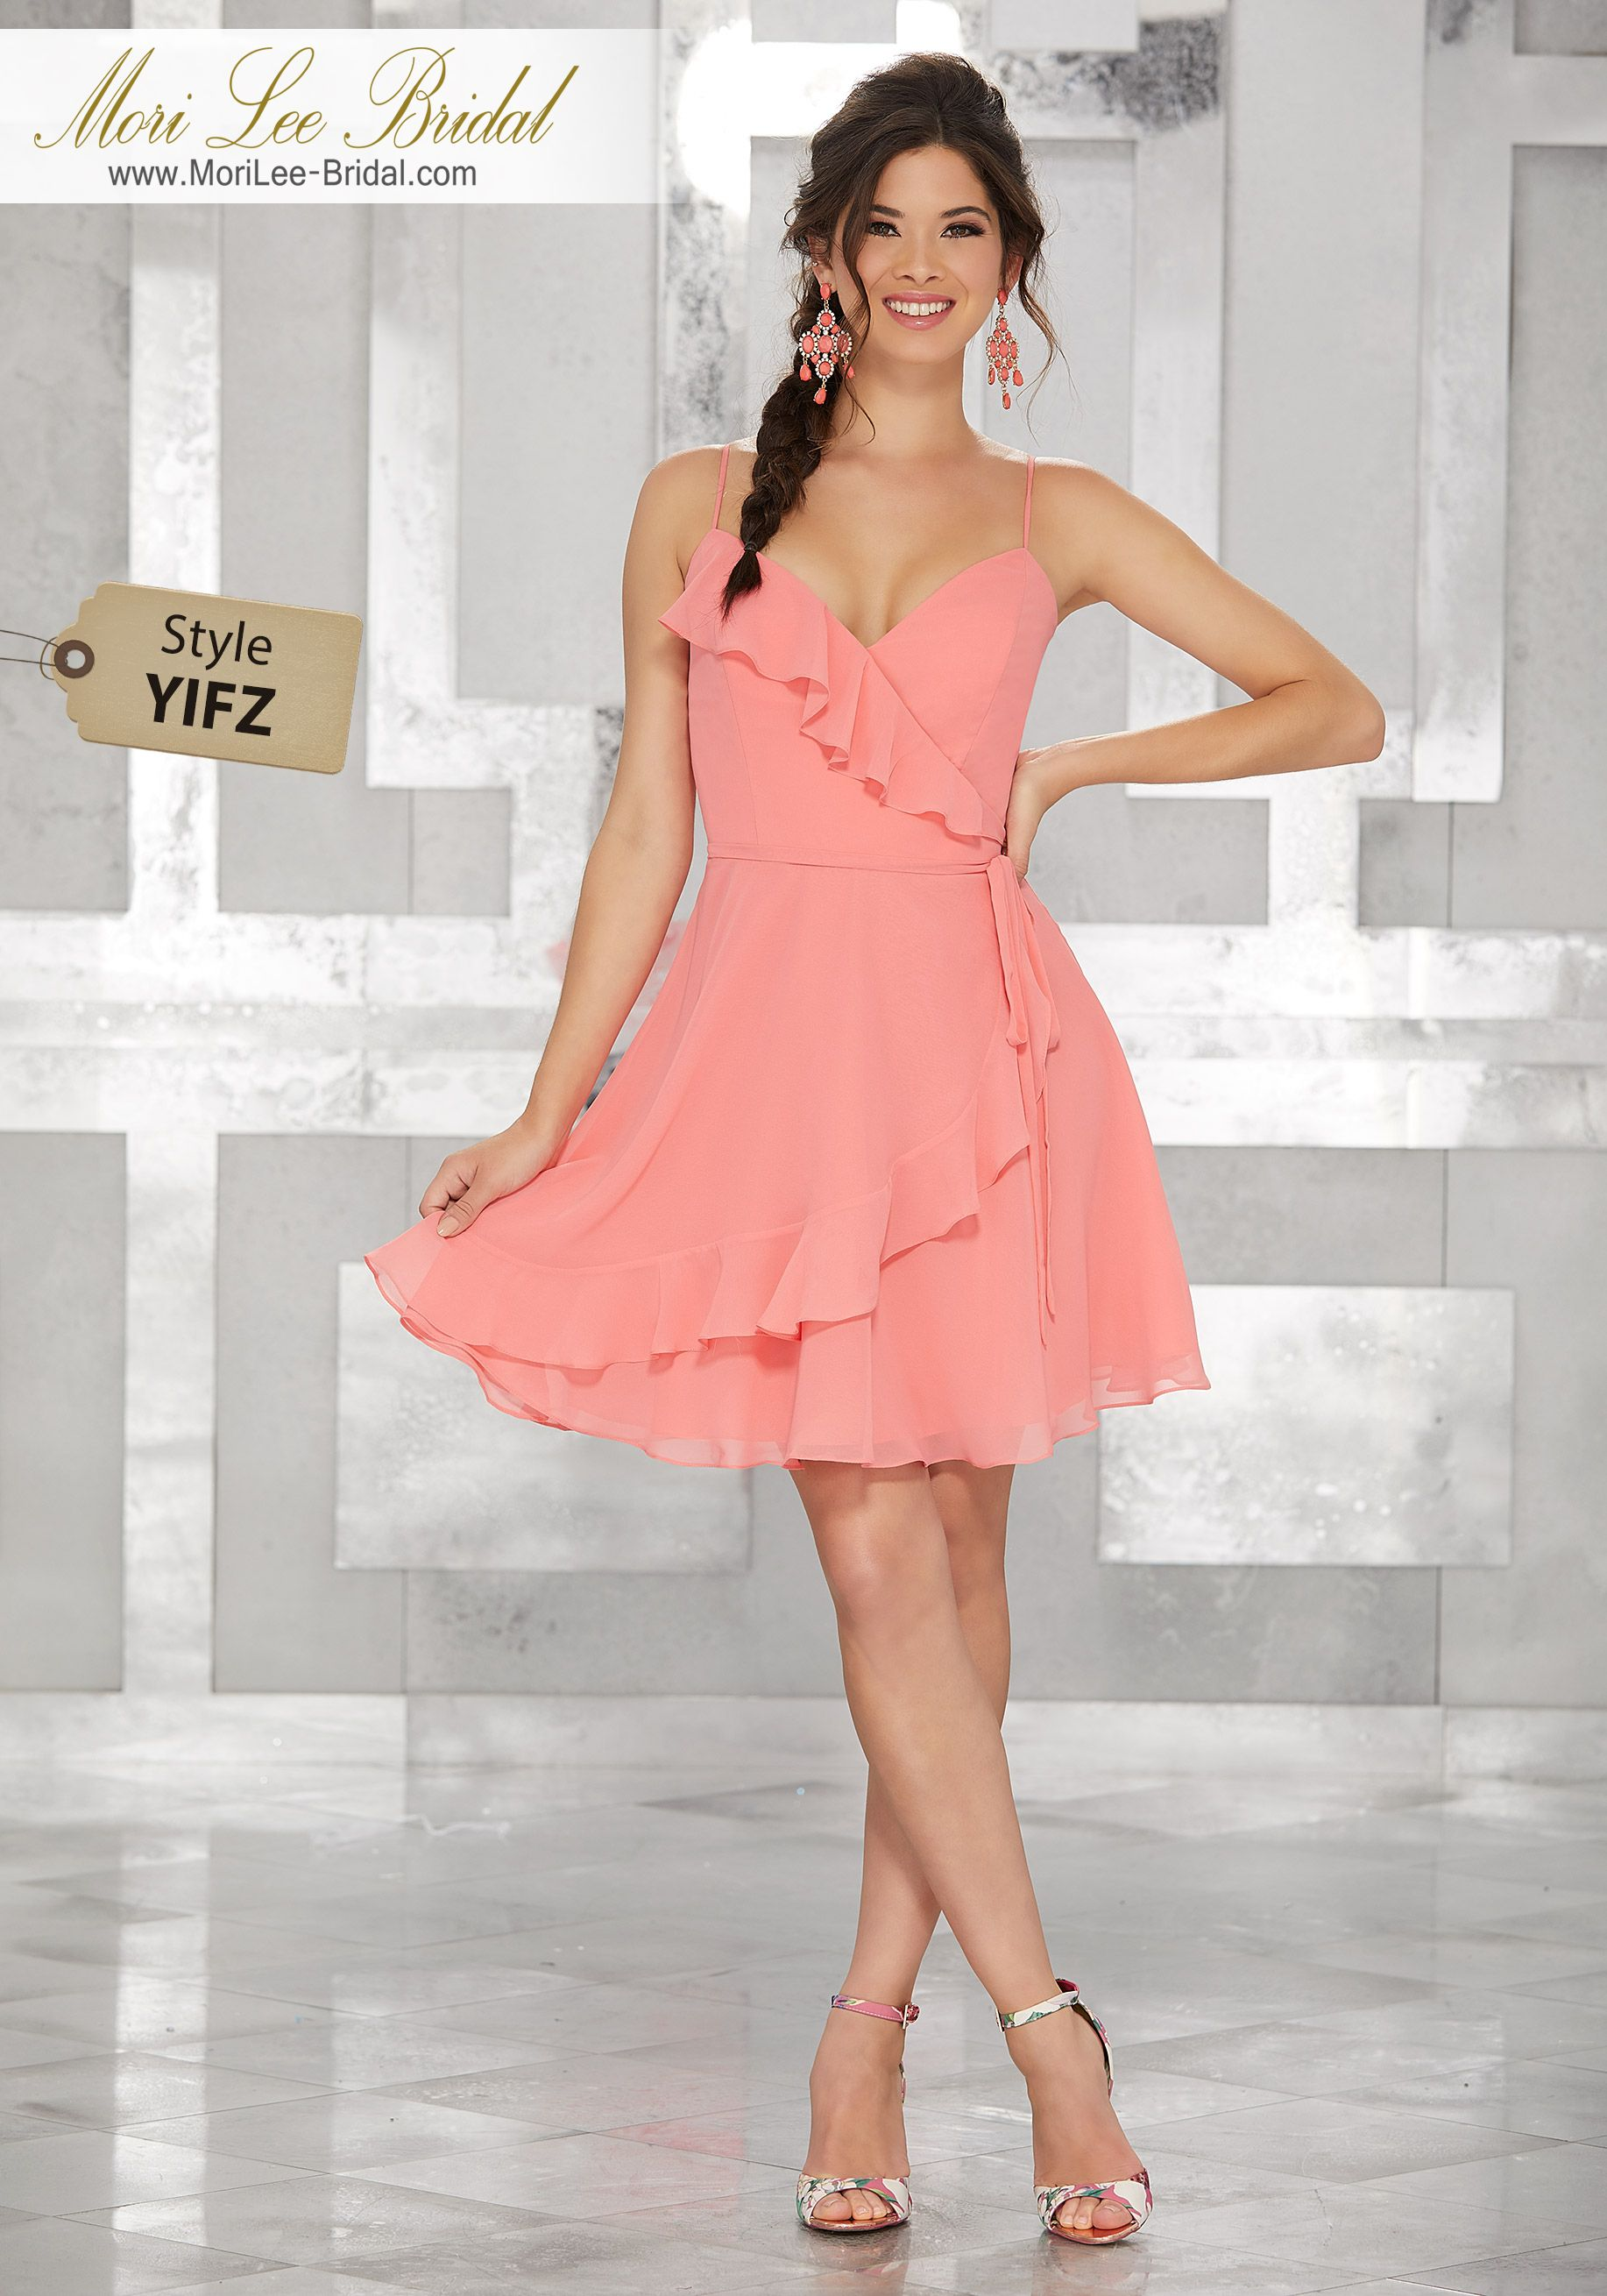 Style YIFZWrap Style Chiffon Party Dress with Ruffled NecklineColors ...